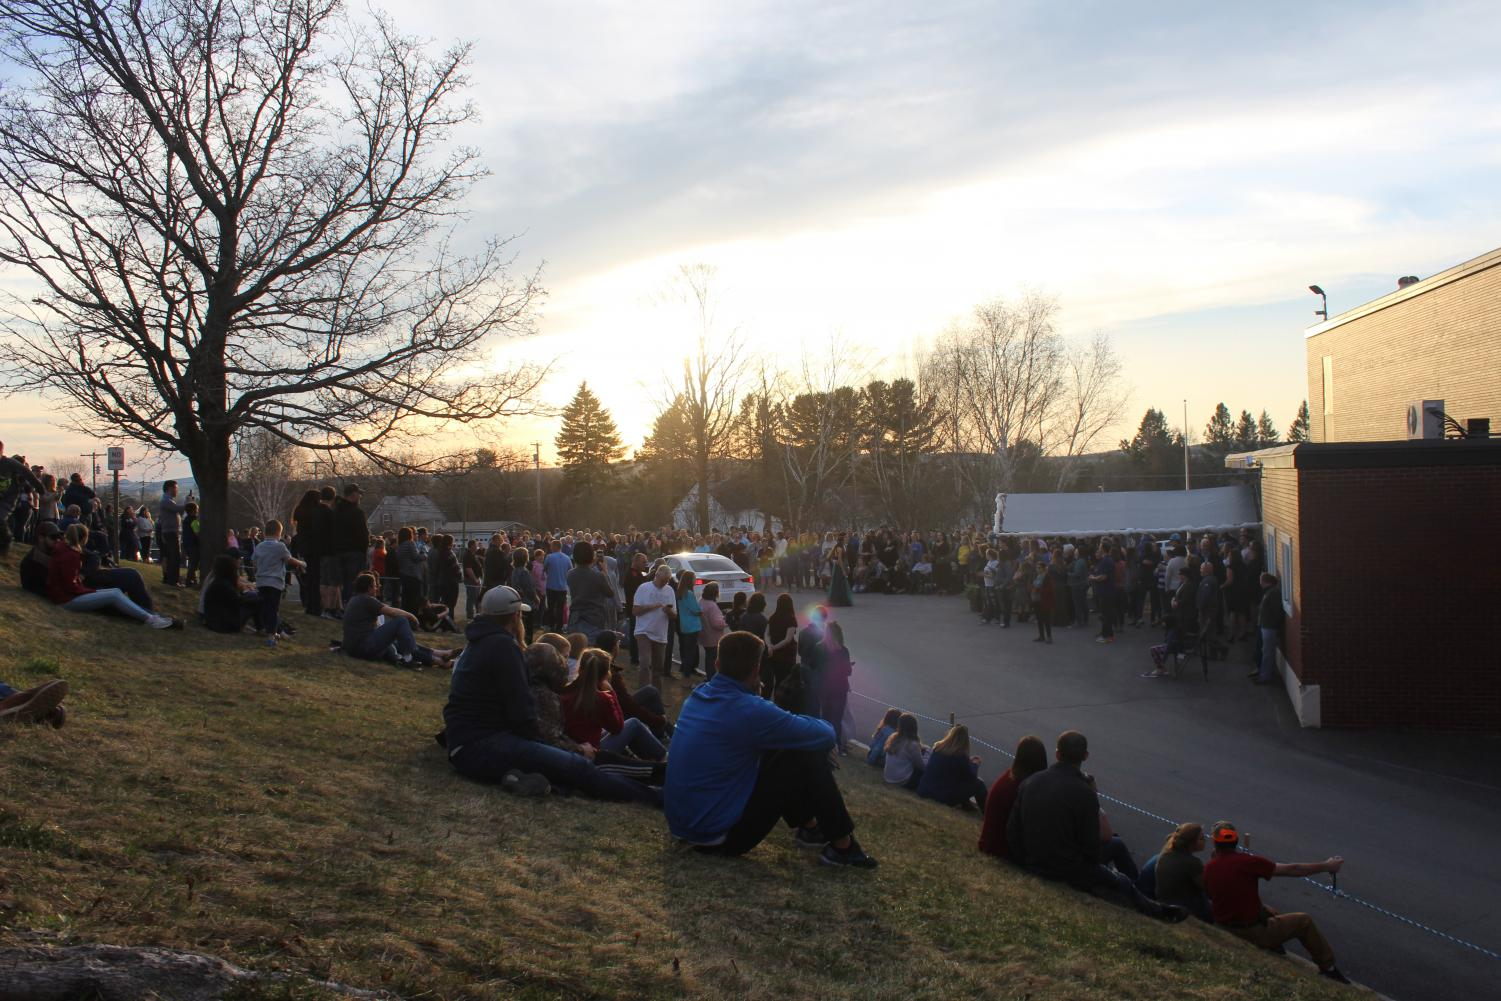 Outside the PIHS gym entrance, a crowd of almumni, parents, and Presque Isle community members turn out to watch the annual prom parade arrival on May 4.